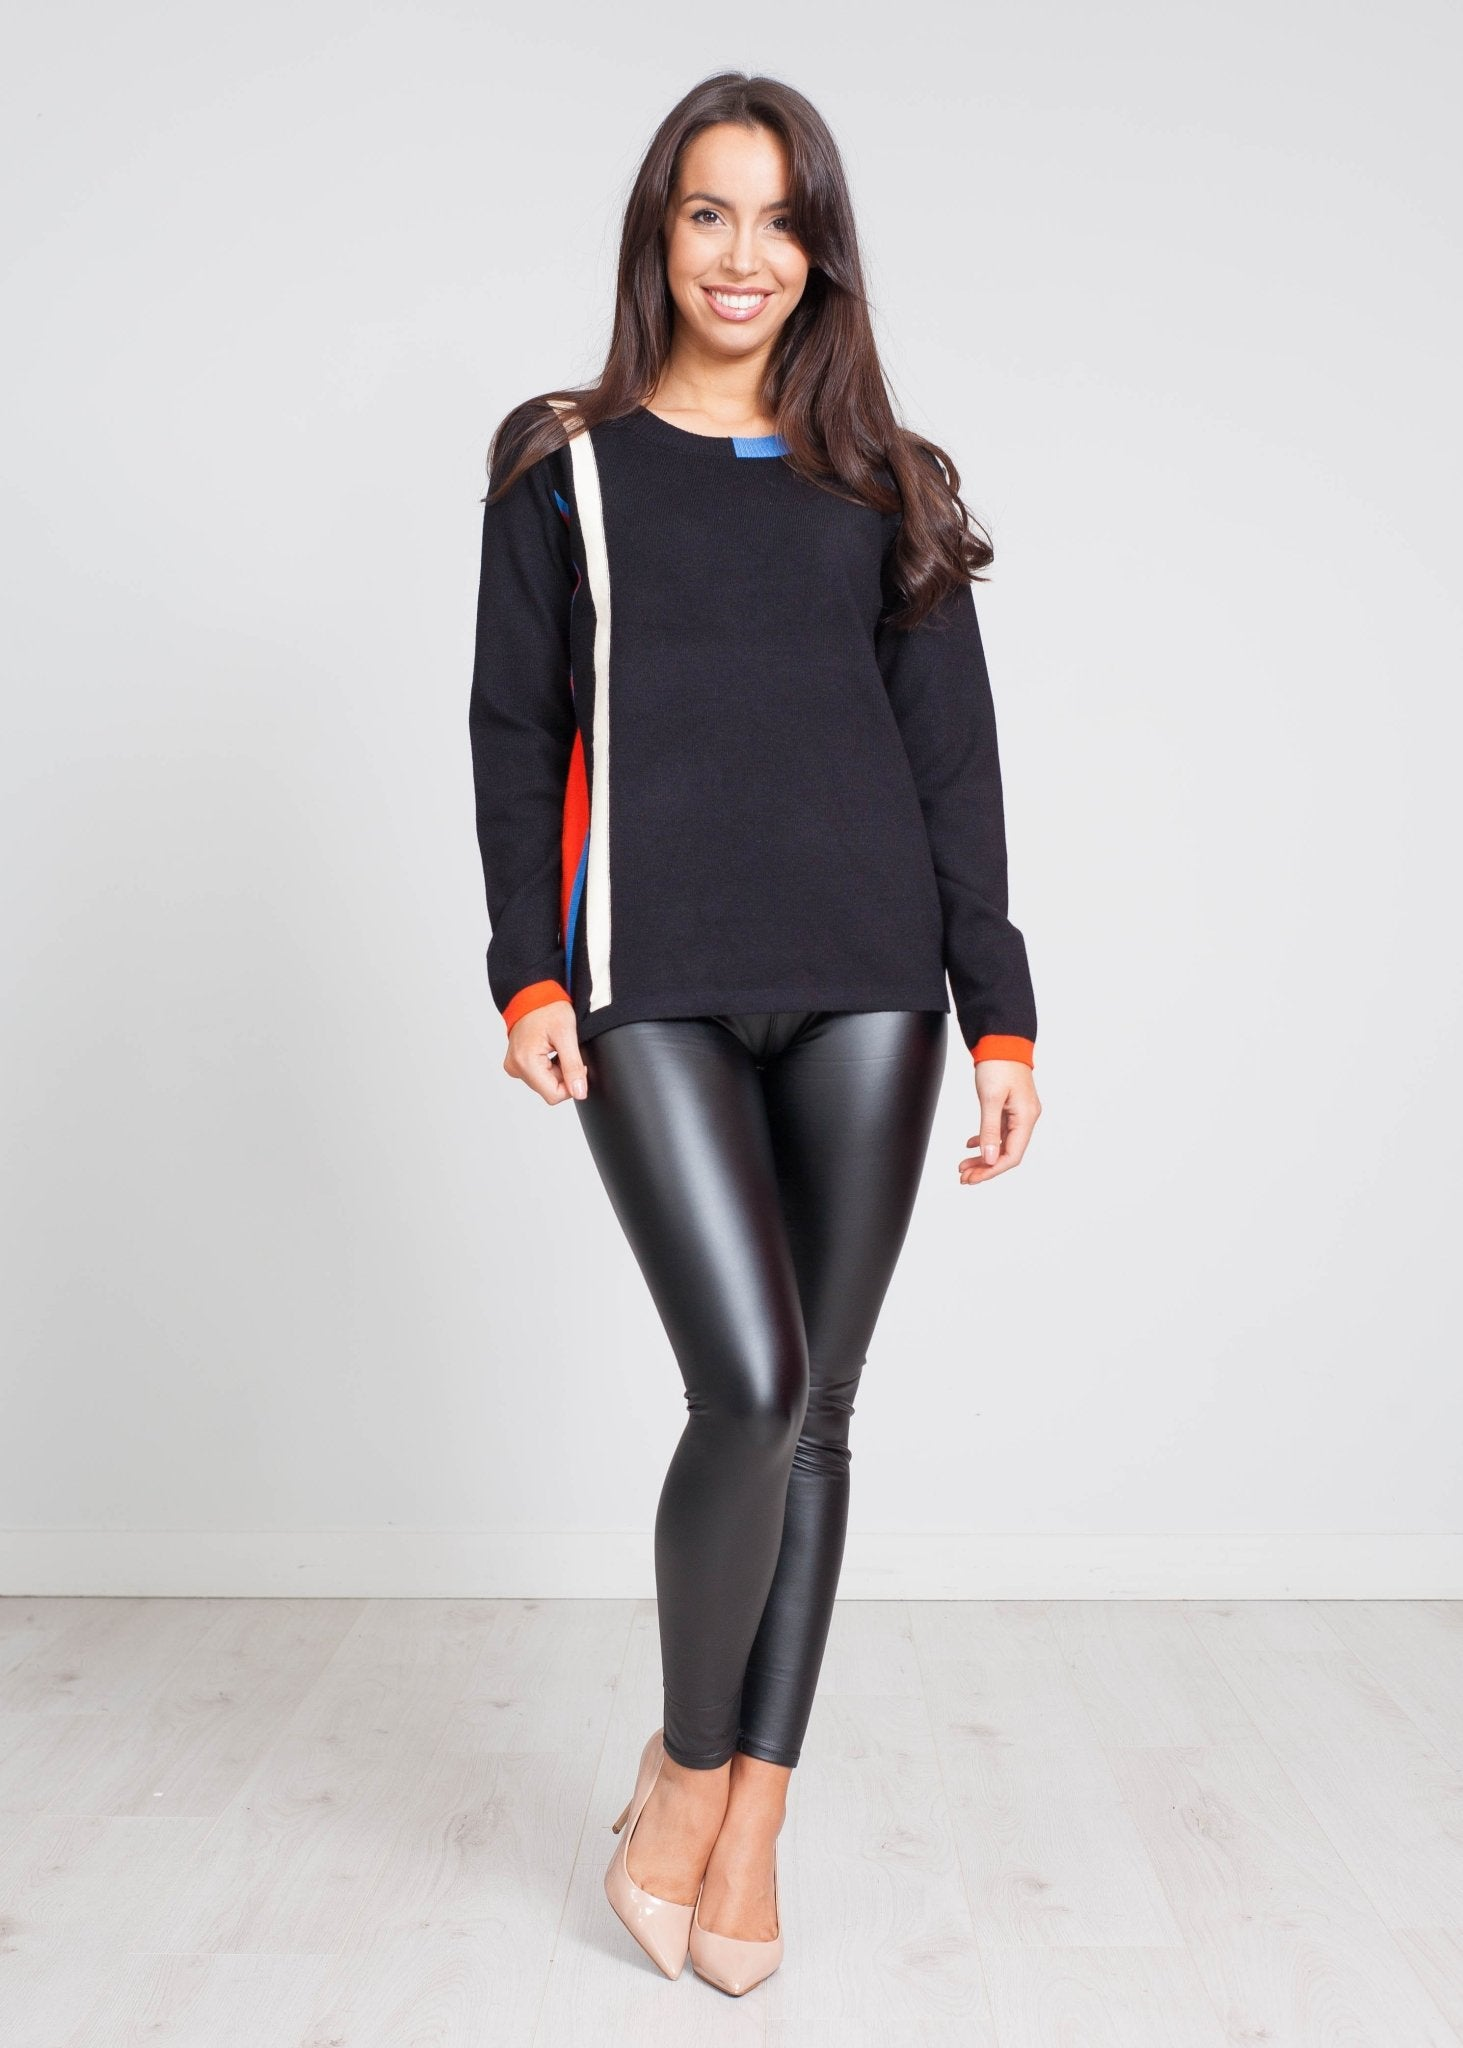 Priya Colour Stripe Knit In Black - The Walk in Wardrobe